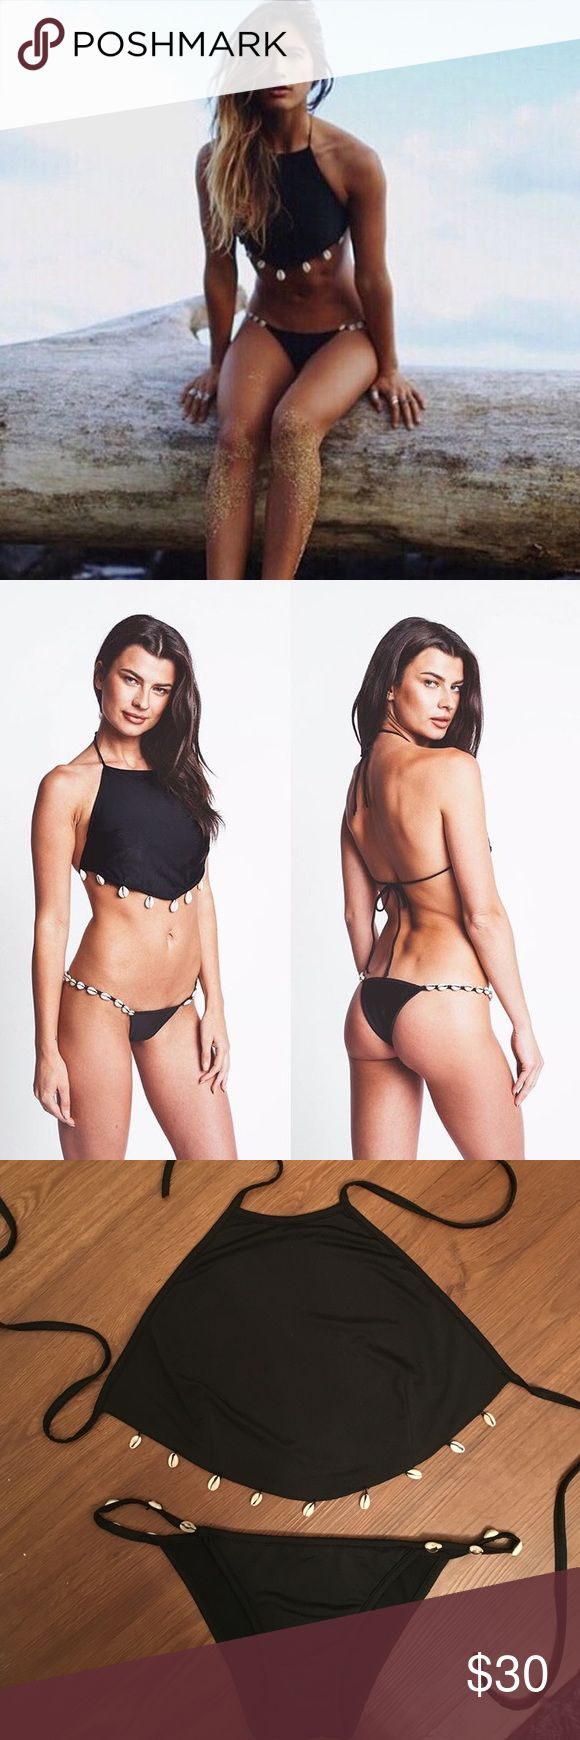 Black seashell bikini brand new never worn Black halter bikini Size medium top would A/B or maybe even a C. Bottoms are size medium would fit about a 25-26 but would look just as cute with plain black bottoms😝 no brand ASOS Swim Bikinis